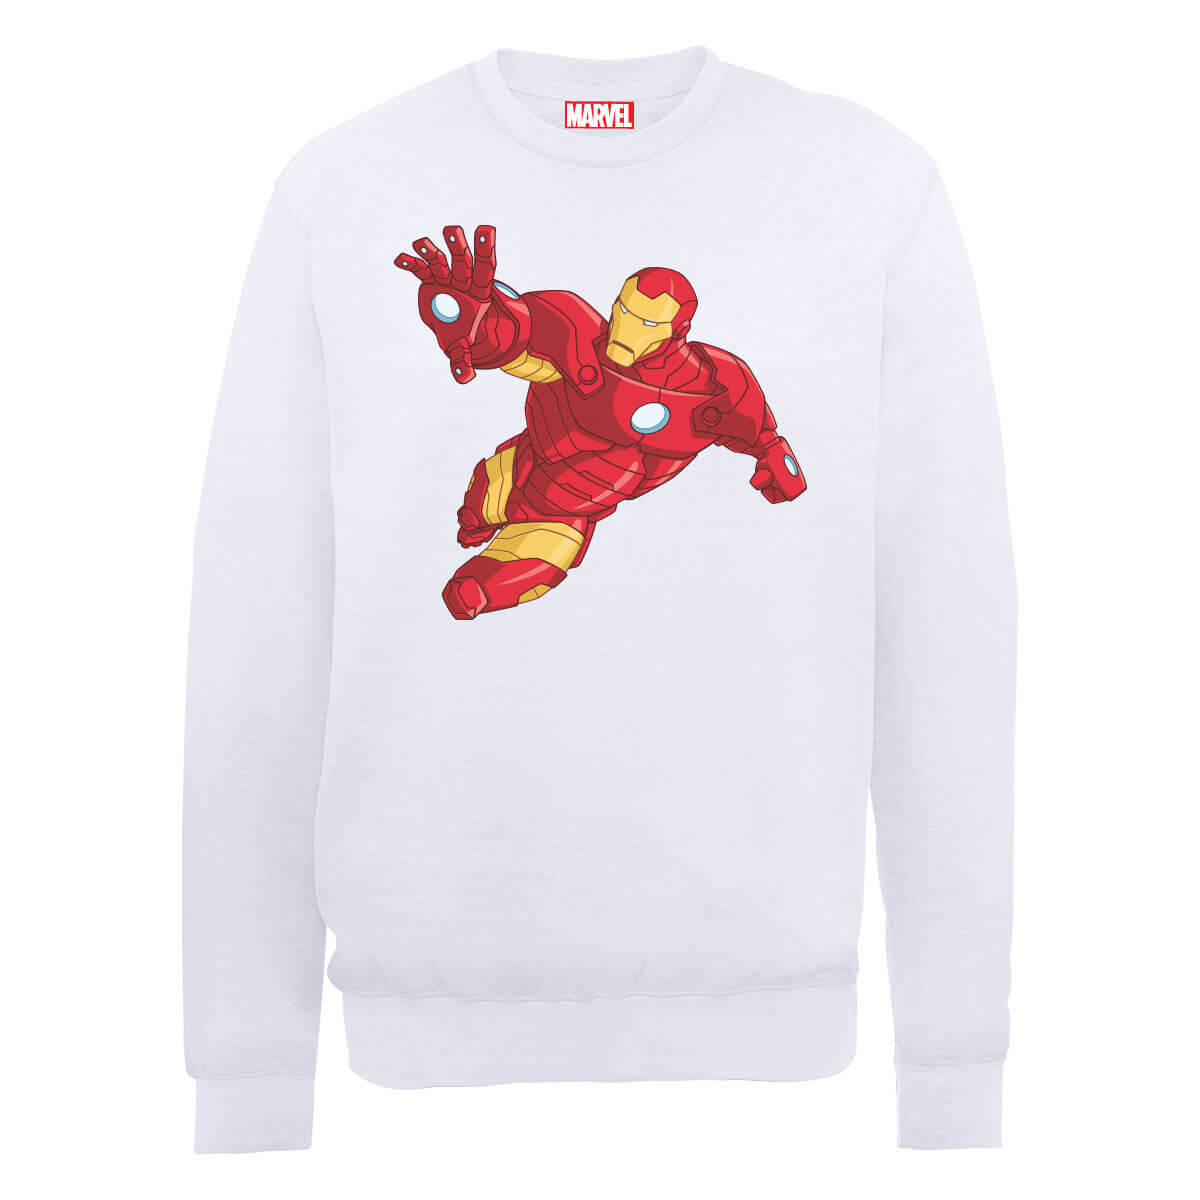 Marvel Avengers Assemble Iron Man Simple Sweatshirt - White